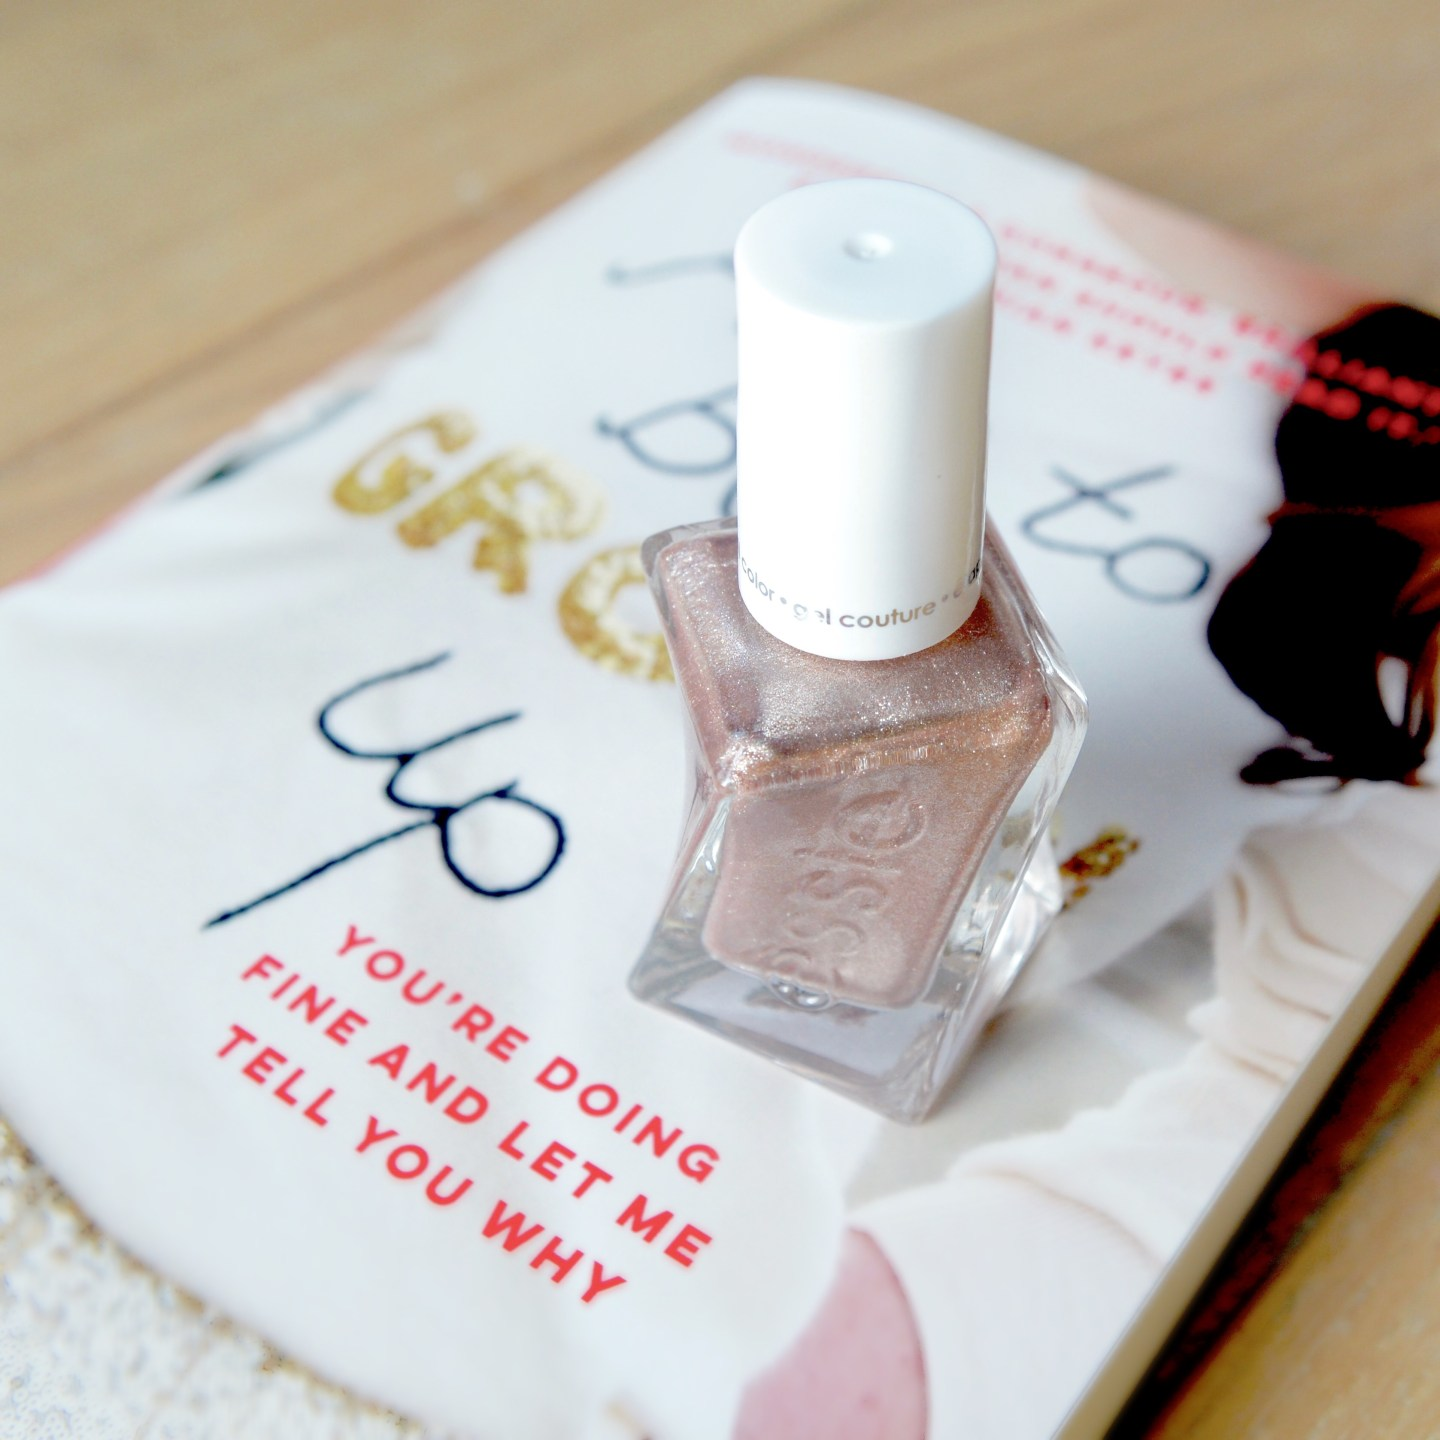 Friday Faves: Daisy Buchanan's book 'How To Be A Grown Up' (buy it immediately!) and essie 'To Have And To Gold', the perfect rose gold polish.